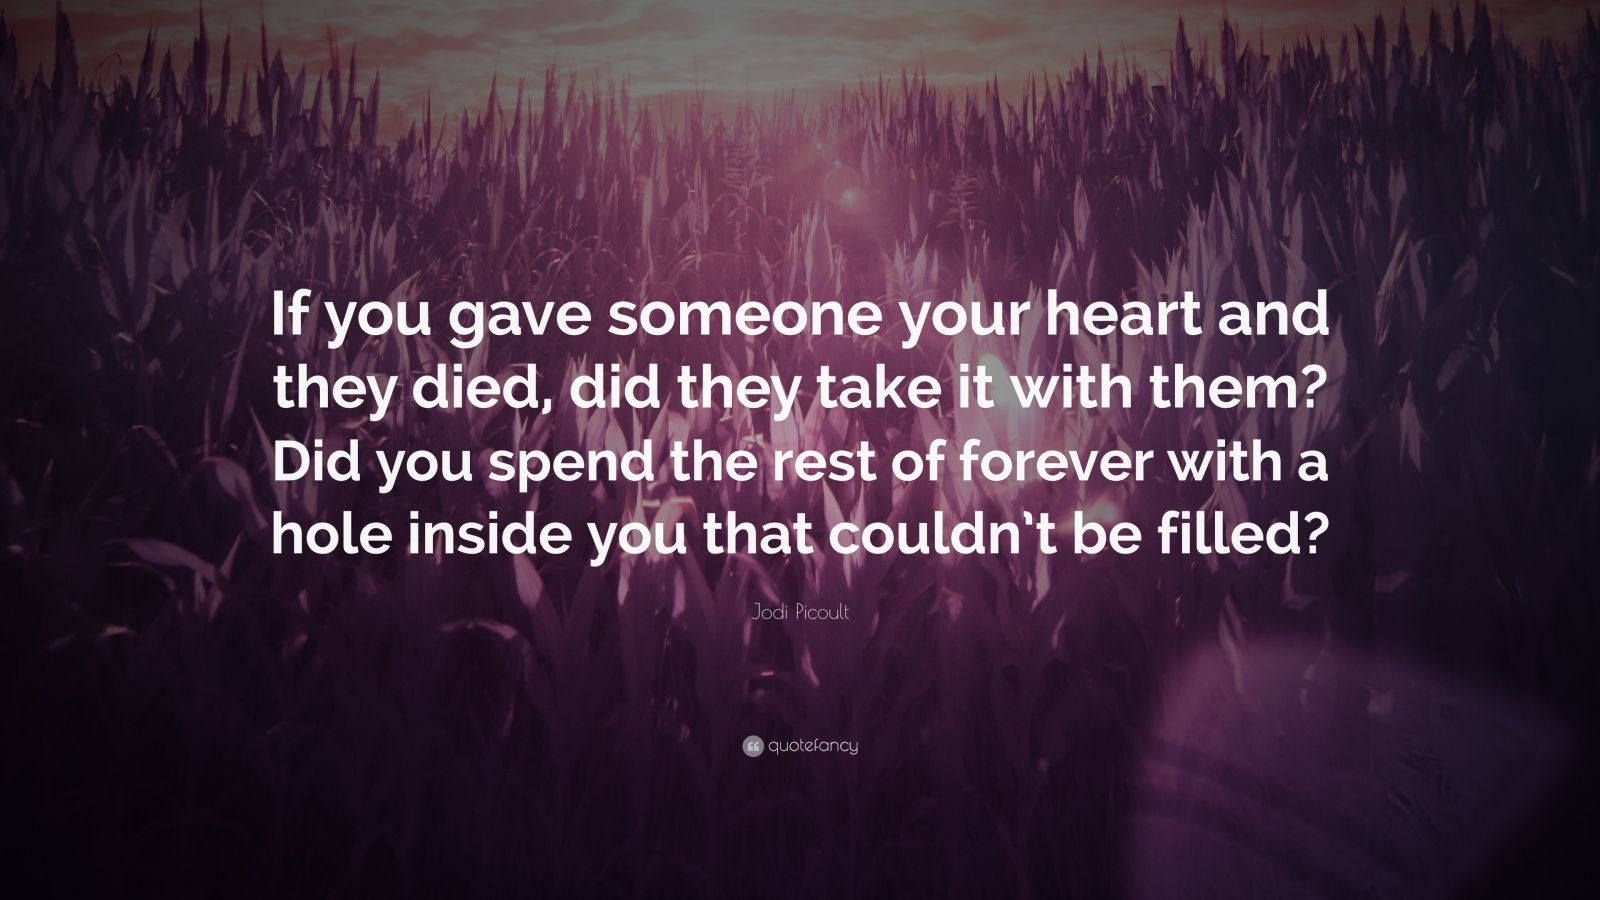 """Jodi Picoult Quote: """"If you gave someone your heart and they died, did they take it with them? Did you spend the rest of forever with a hole inside you that couldn't be filled?"""""""